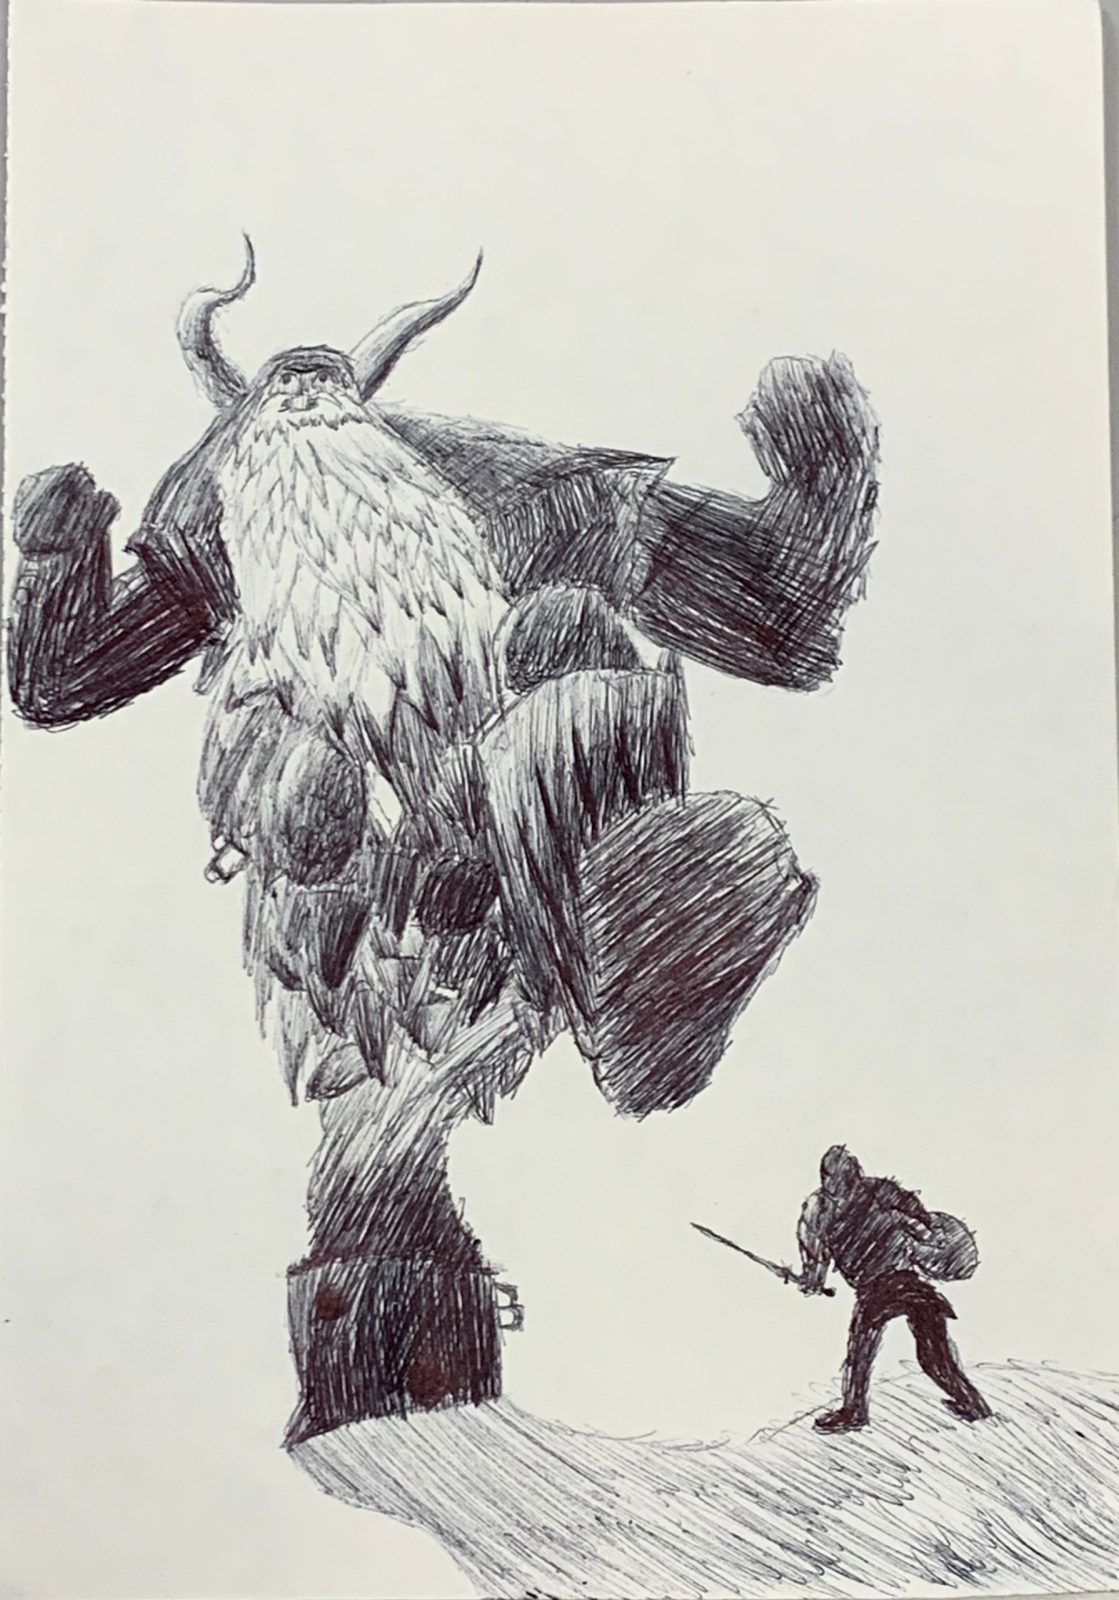 A pen and ink drawing of a knight with a shield and sword facing a frost giant